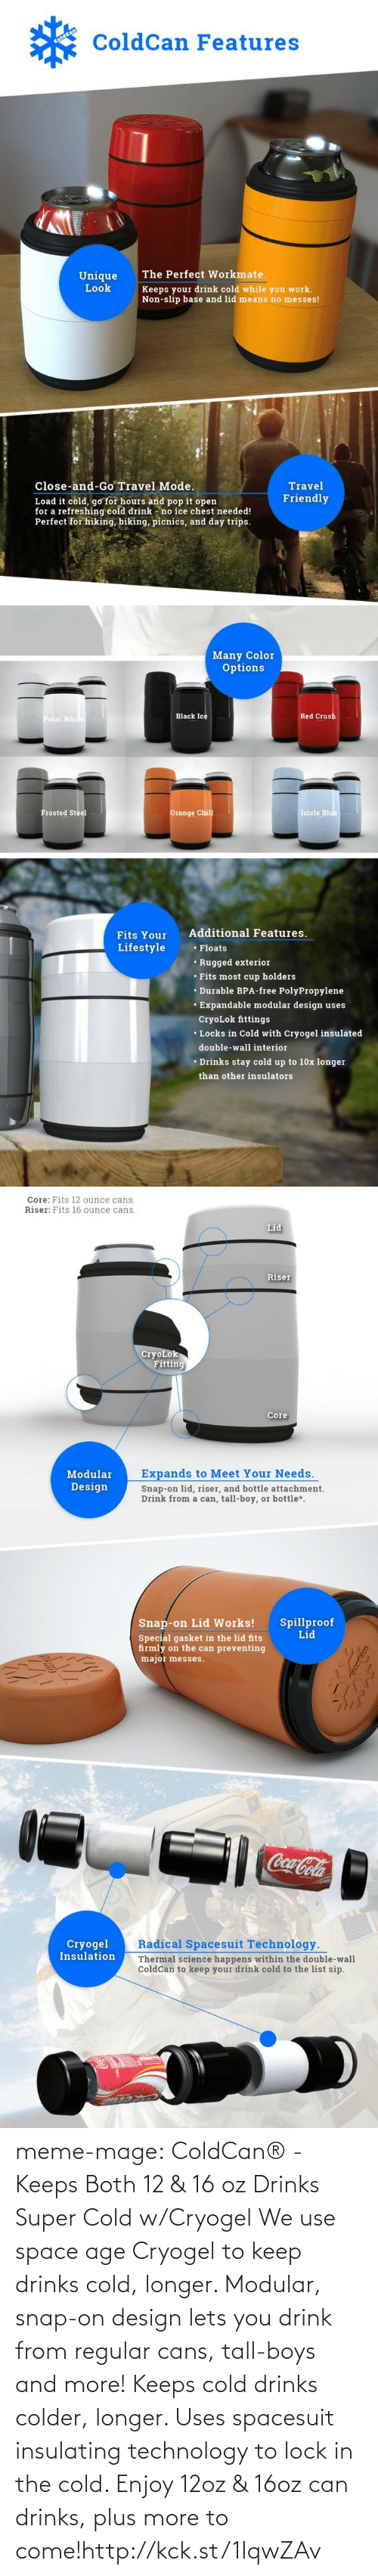 Expands: ColdCan Features  The Perfect Workmate.  Keeps your drink cold while you work.  Non-slip base and lid means no messes!  Unique  Look  Travel  Close-and-Go Travel Mode.  Friendly  Load it cold, go for hours and pop it open  for a refreshing cold drink - no ice chest needed!  Perfect for hiking, biking, picnics, and day trips.   Many Color  Options  Polar While  Black Ice  Red Crush  Icicle Blue  Orange Chill  Frosted Steel  Additional Features.  Fits Your  Lifestyle  • Floats  • Rugged exterior  • Fits most cup holders  • Durable BPA-free PolyPropylene  • Expandable modular design uses  CryoLok fittings  • Locks in Cold with Cryogel insulated  double-wall interior  • Drinks stay cold up to 10x longer  than other insulators   Core: Fits 12 ounce cans.  Riser: Fits 16 ounce cans.  Lid  Riser  CryoLok  Fitting  Core  Expands to Meet Your Needs.  Modular  Design  Snap-on lid, riser, and bottle attachment.  Drink from a can, tall-boy, or bottle*.  Spillproof  Lid  Snap-on Lid Works!  Special gasket in the lid fits  firmly on the can preventing  major messes.  Coca-Cola  Radical Spacesuit Technology.  Cryogel  Insulation  Thermal science happens within the double-wall  ColdCan to keep your drink cold to the list sip. meme-mage:  ColdCan® - Keeps Both 12 & 16 oz Drinks Super Cold w/Cryogel We use space age Cryogel to keep drinks cold, longer. Modular, snap-on  design lets you drink from regular cans, tall-boys and more! Keeps cold drinks colder, longer. Uses spacesuit insulating  technology to lock in the cold. Enjoy 12oz & 16oz can drinks, plus  more to come!http://kck.st/1IqwZAv